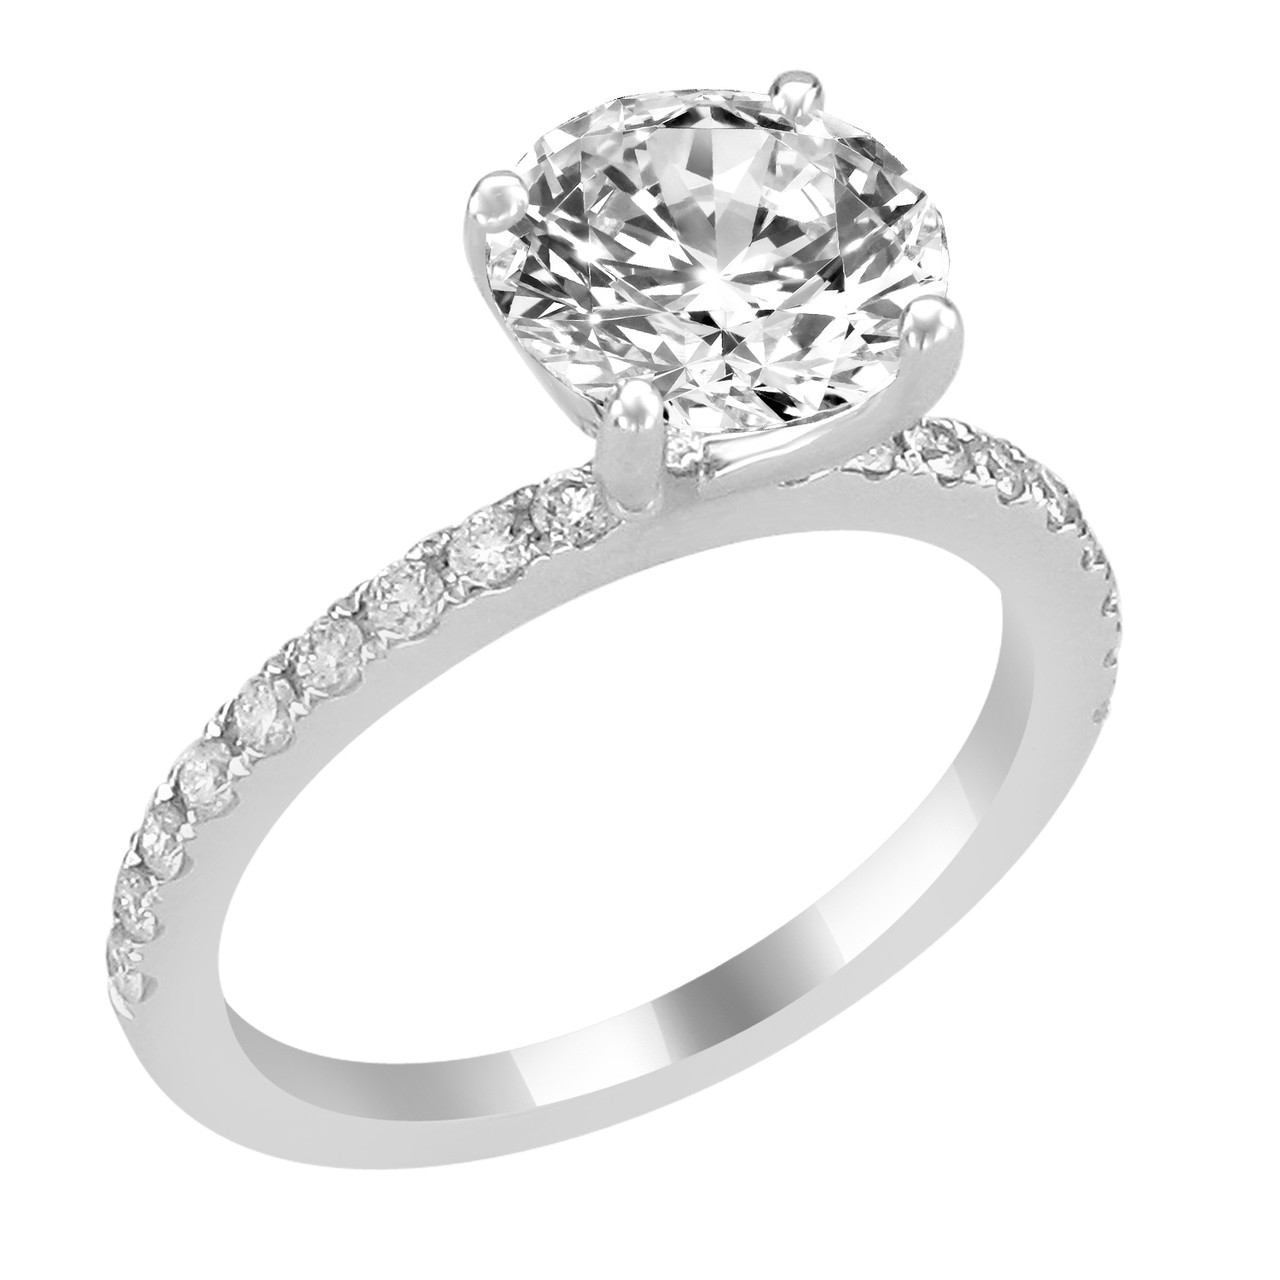 b2c7e729cacda4 14K White Gold Engagement Ring with Bead Set Diamond Side Accent - Classic  Noura Style